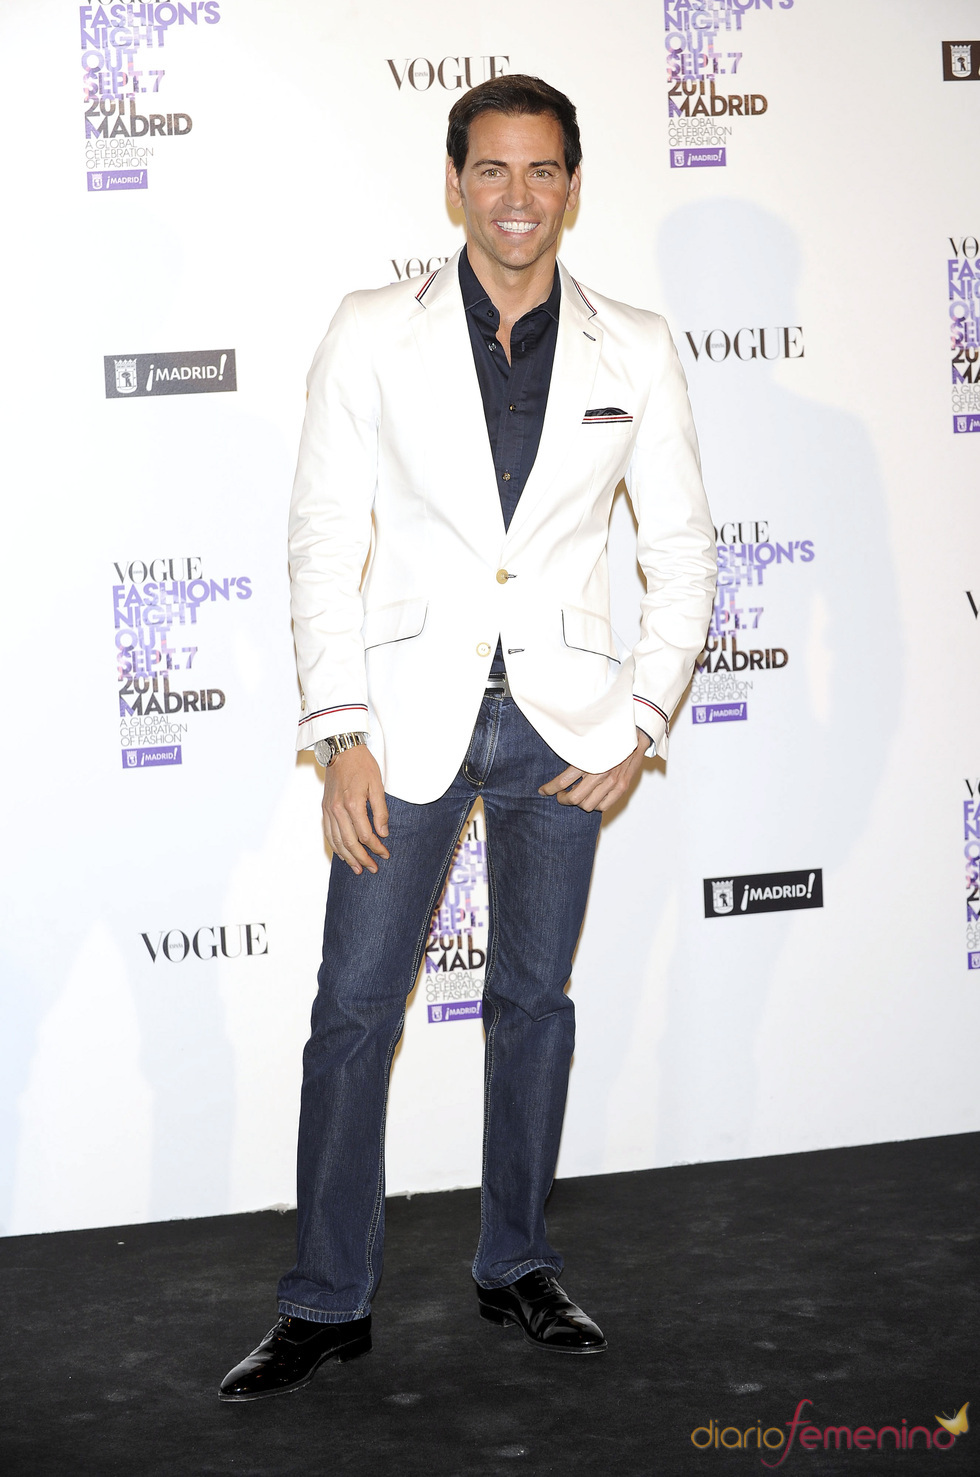 David Meca durante la Vogue Fashion Night Out Madrid 2011